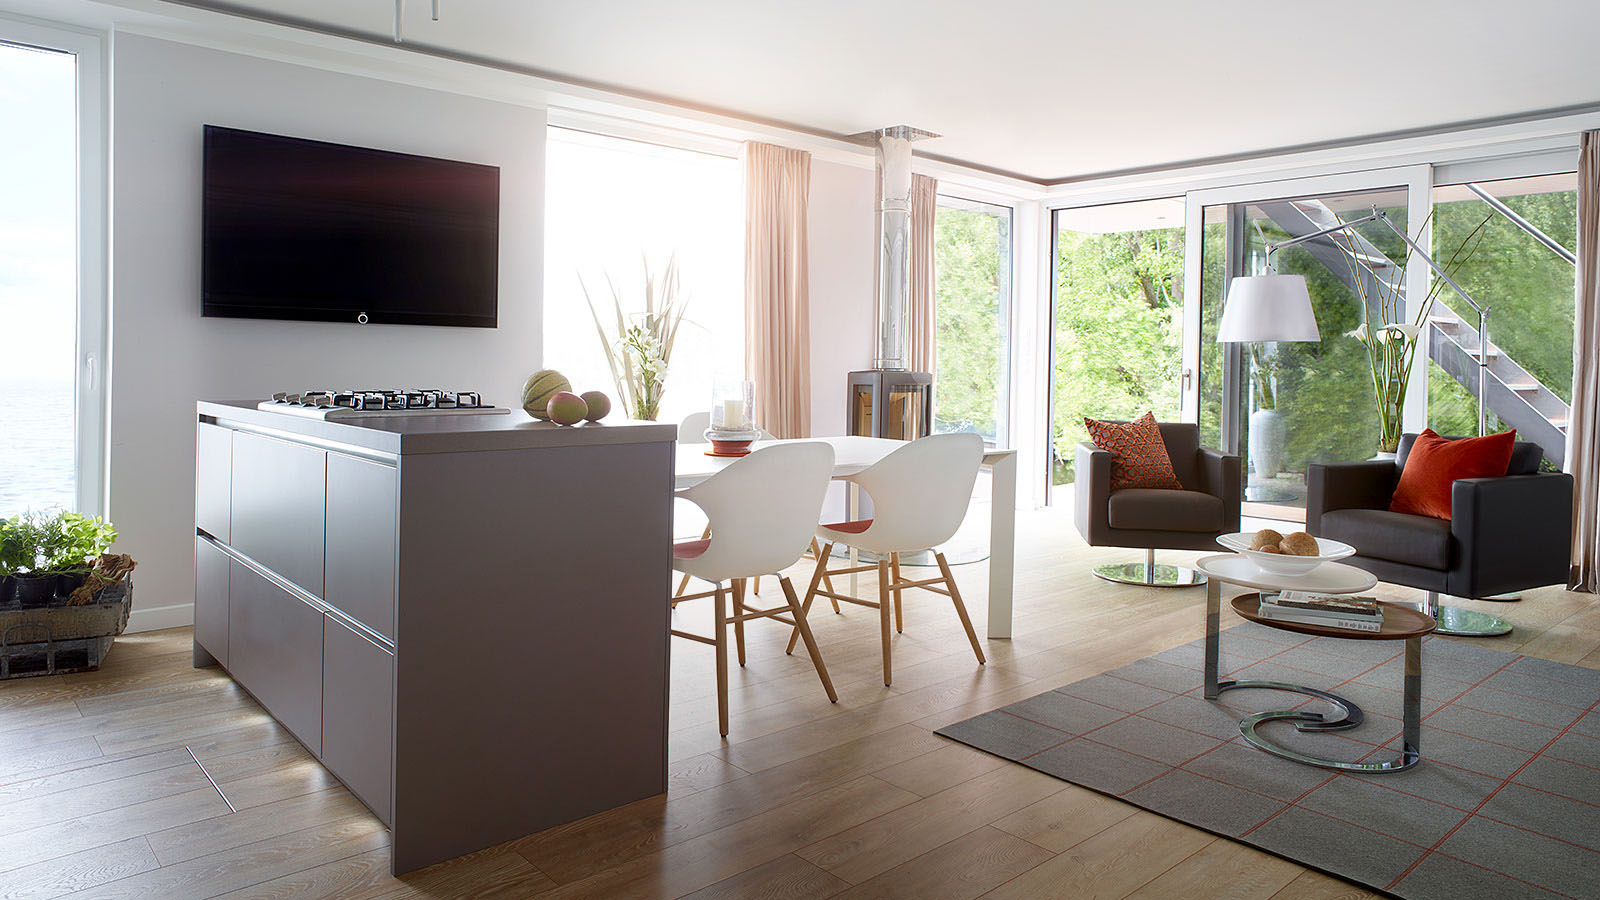 farmhouse tables and chairs recliner sofa elegant floating penthouse with roof terrace | idesignarch interior design, architecture ...